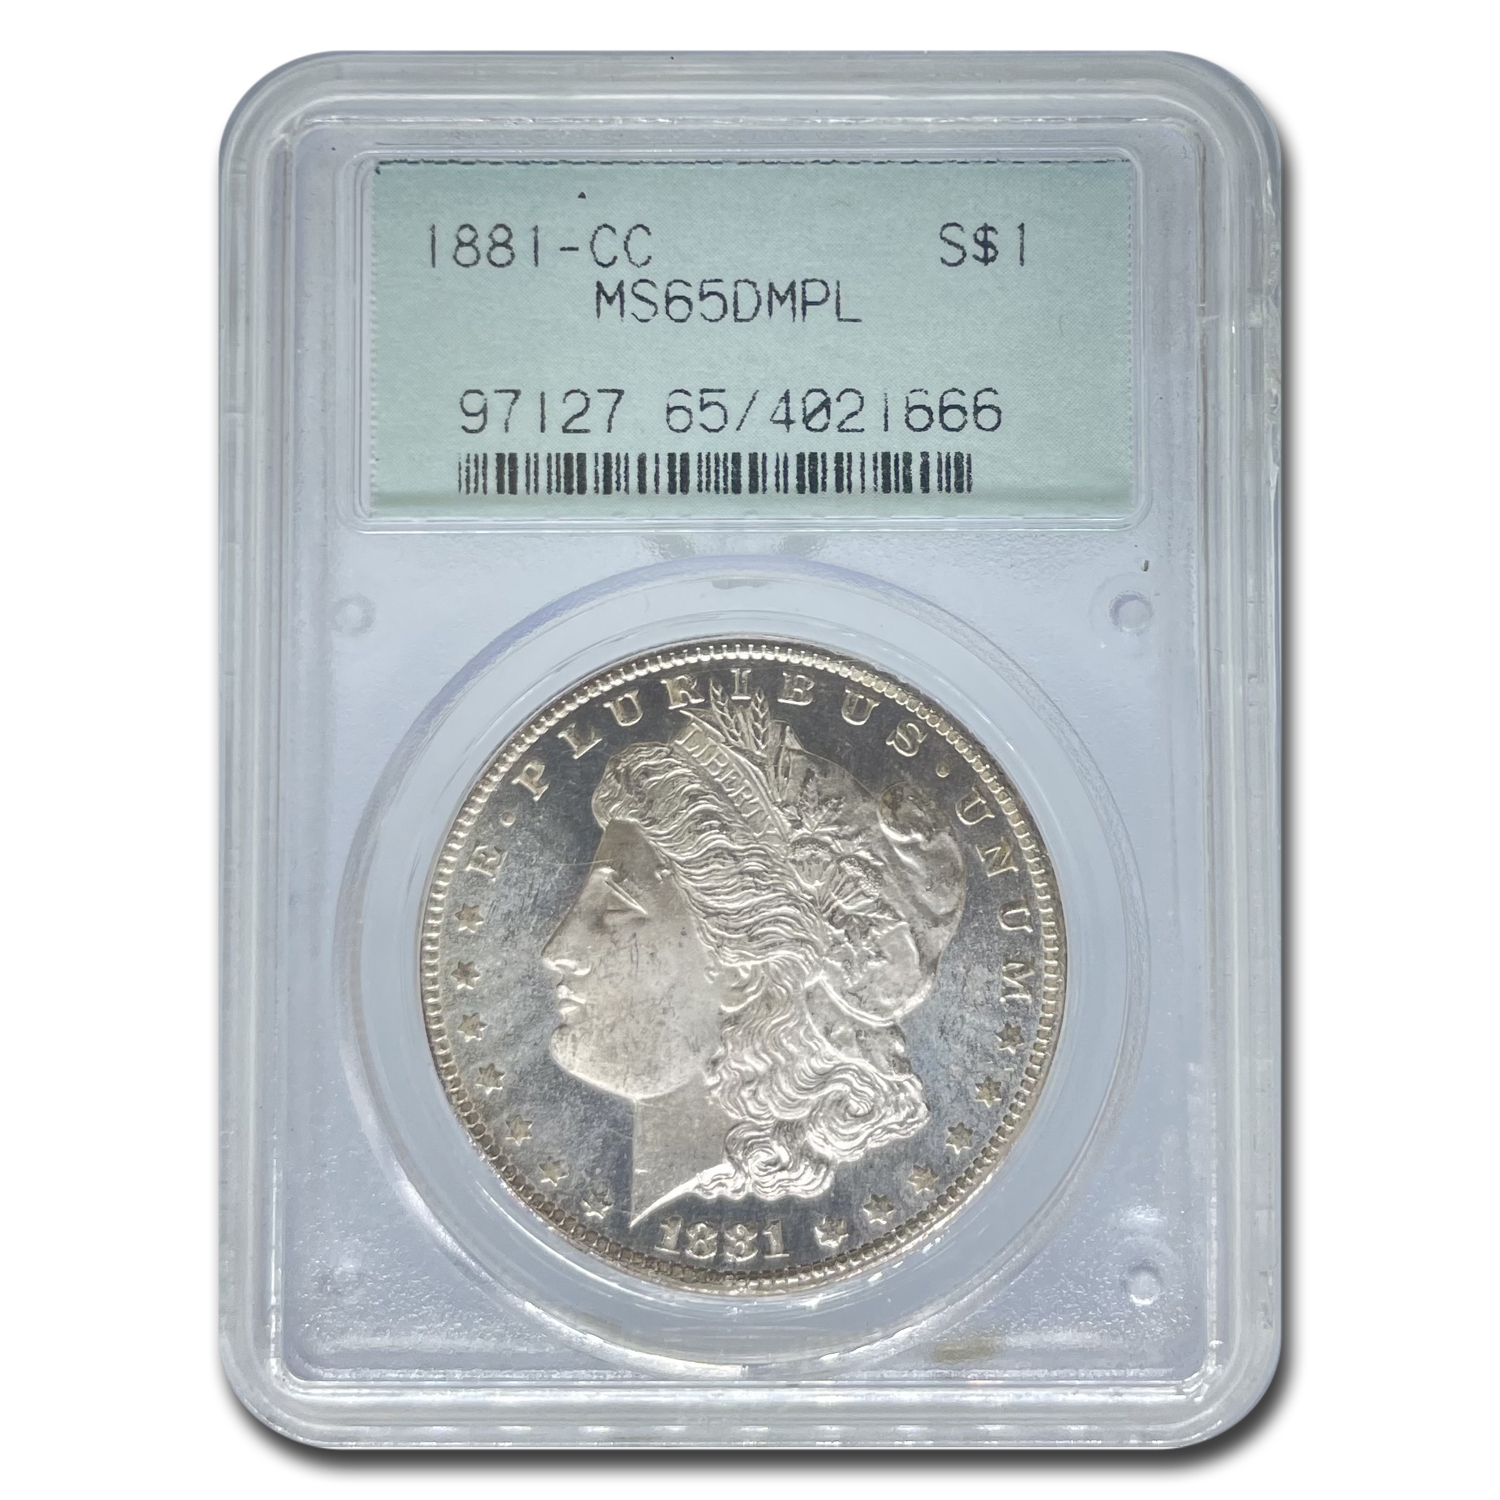 1881-CC Morgan Dollar - MS-65 DMPL Deep Mirror Proof Like PCGS